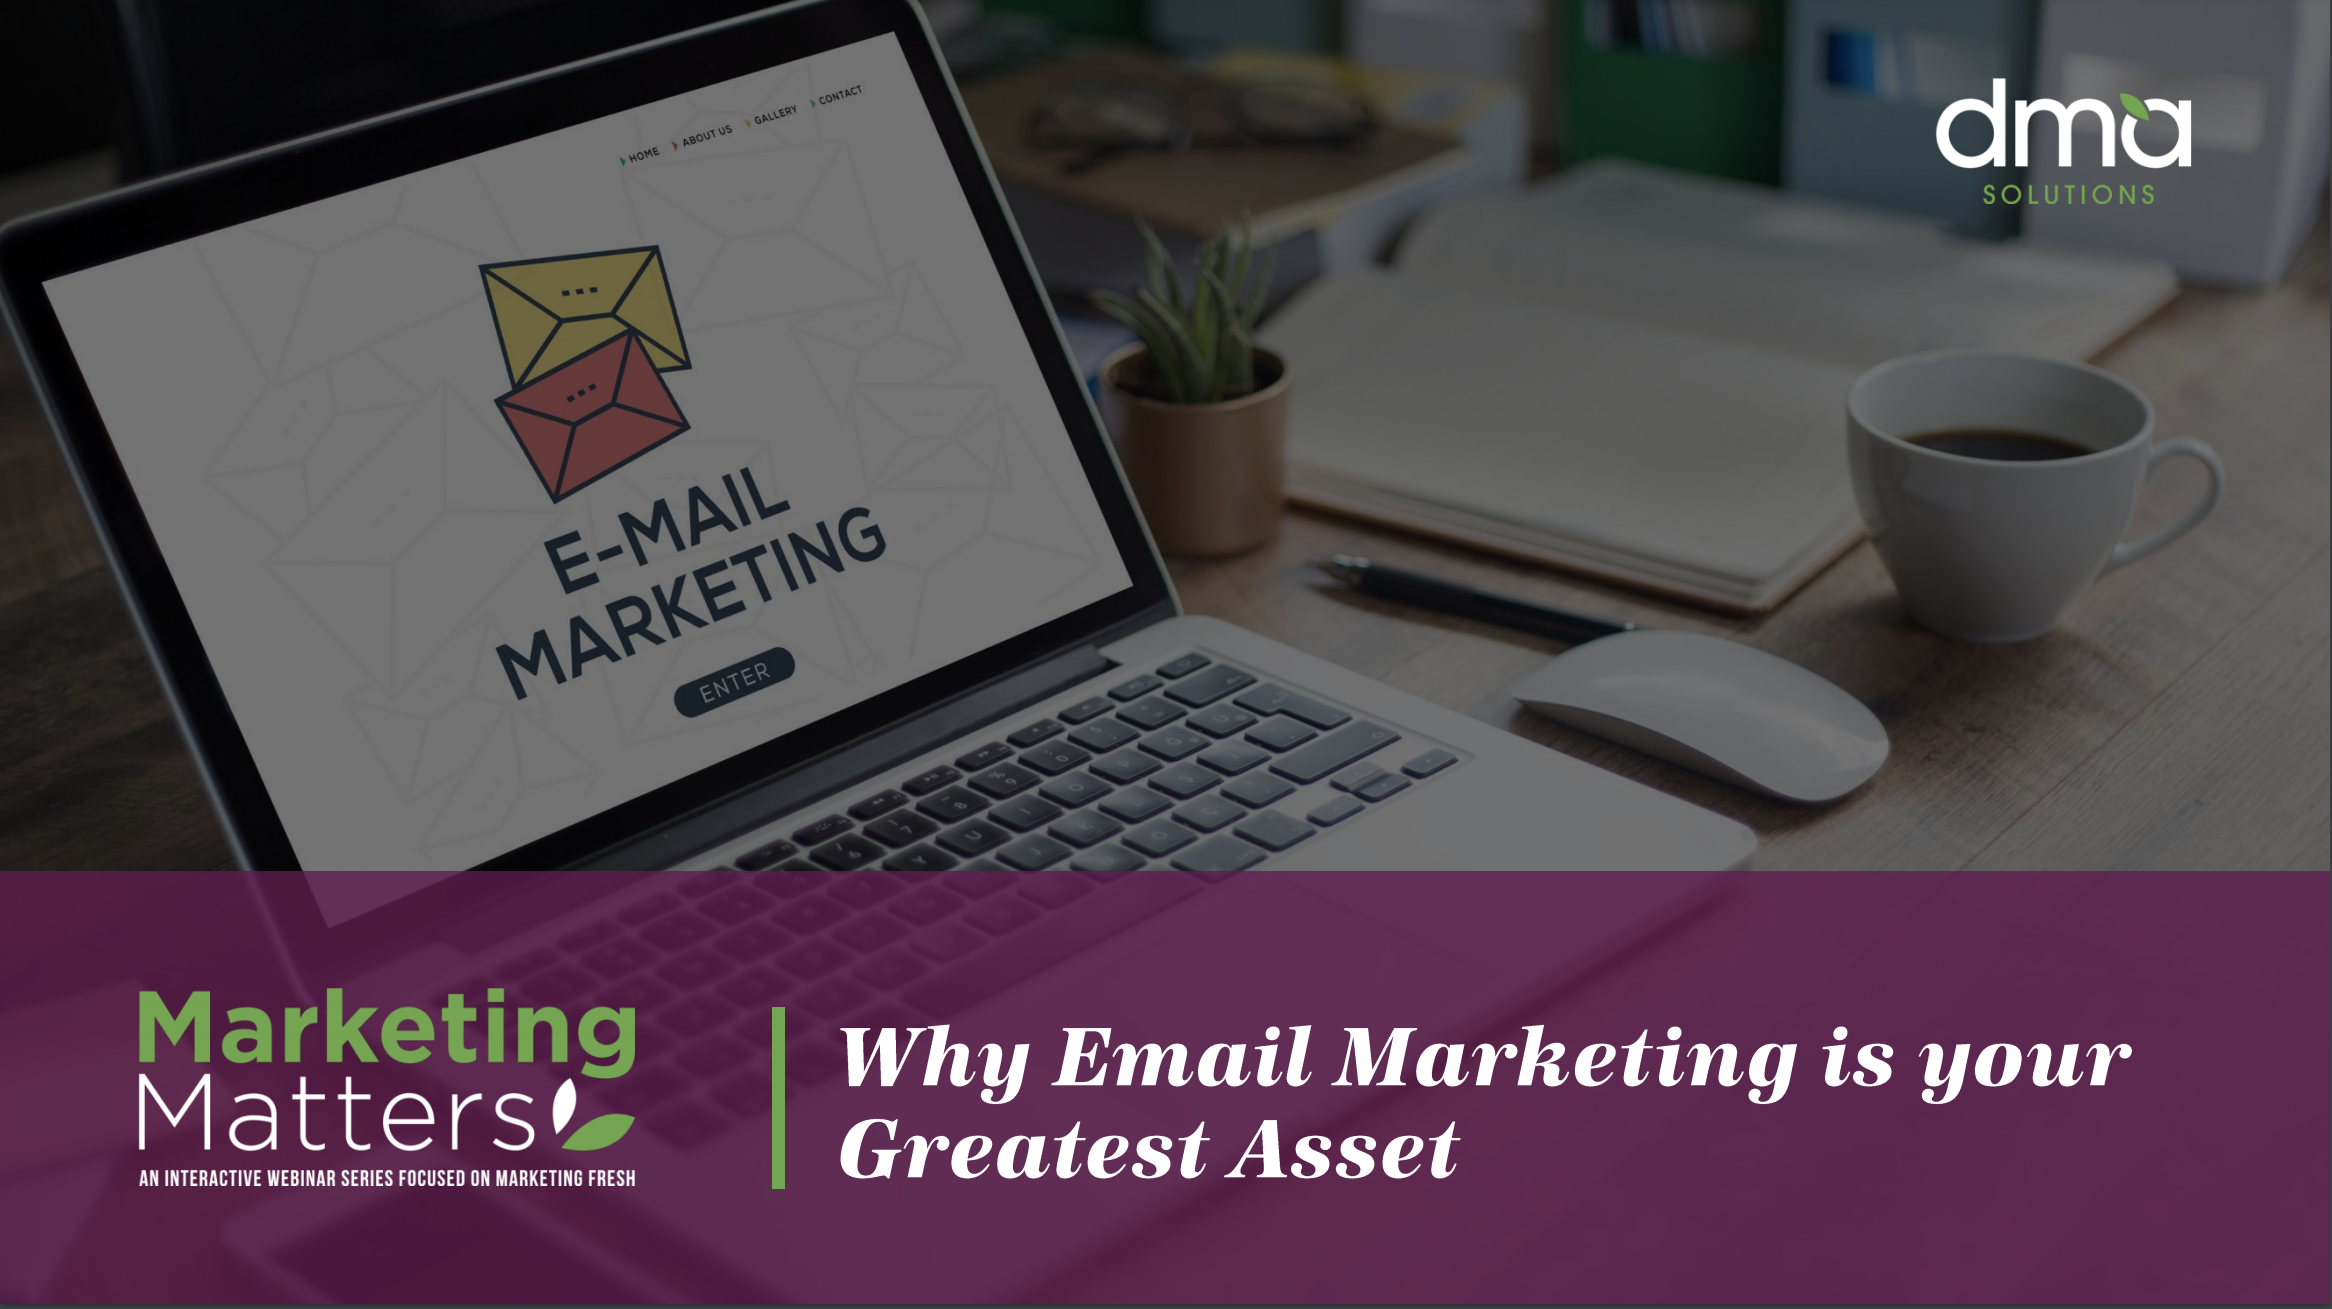 04 Email Marketing is Your Greatest Marketing Asset